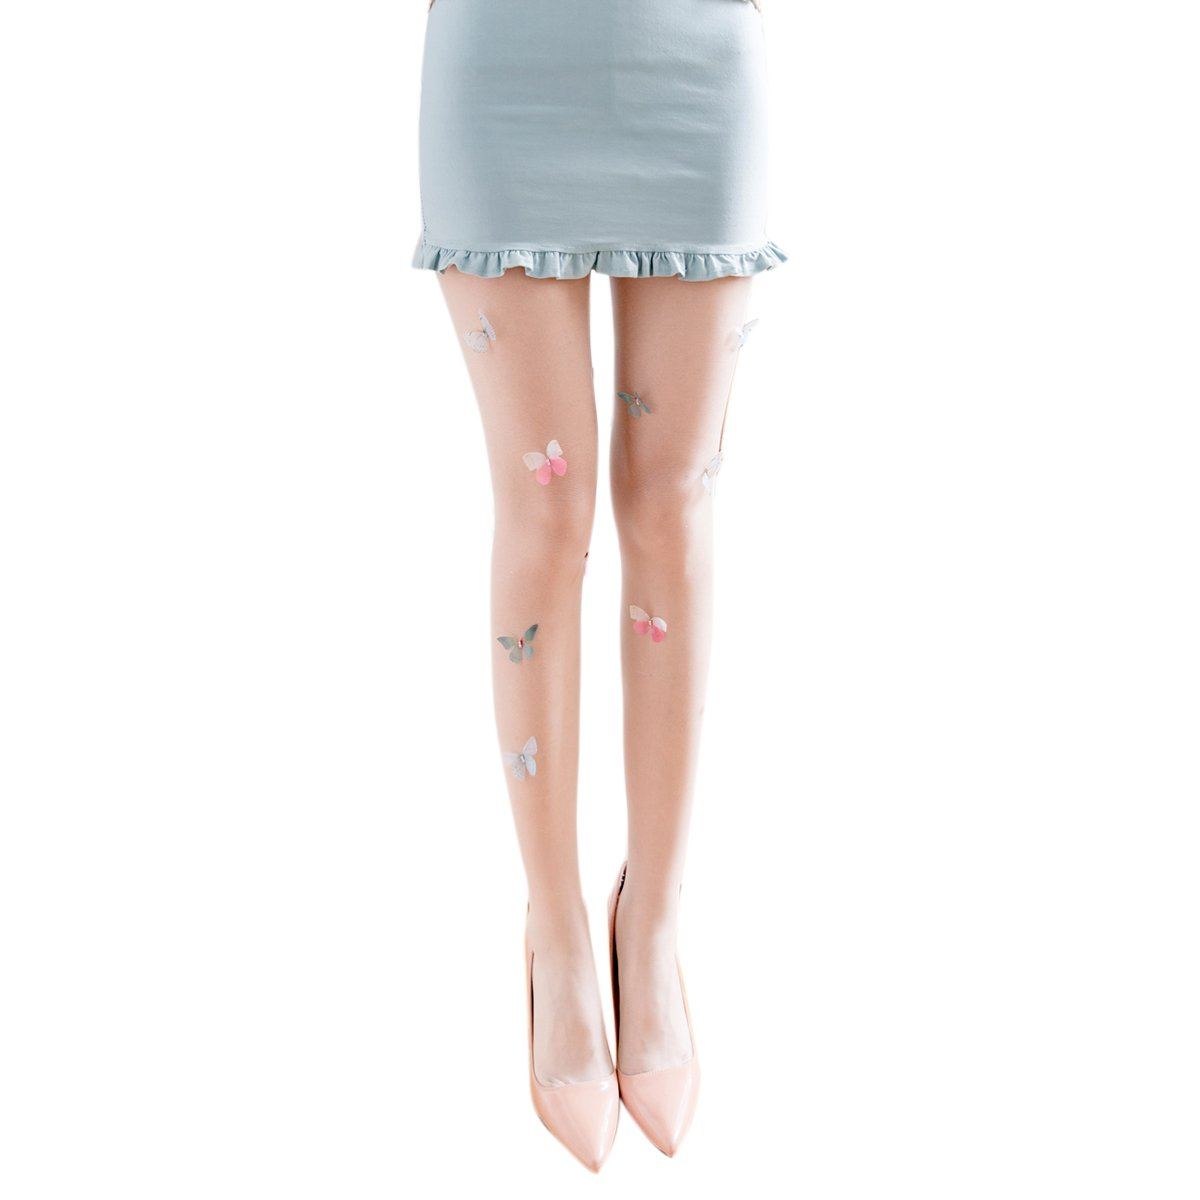 fee74e711 SODIAL Lolita Tights Stockings for Women Girl s Pantyhose Design cute  Butterfly Tattoo Party Tights Nylons Stockings(Skin)  Amazon.co.uk  Clothing